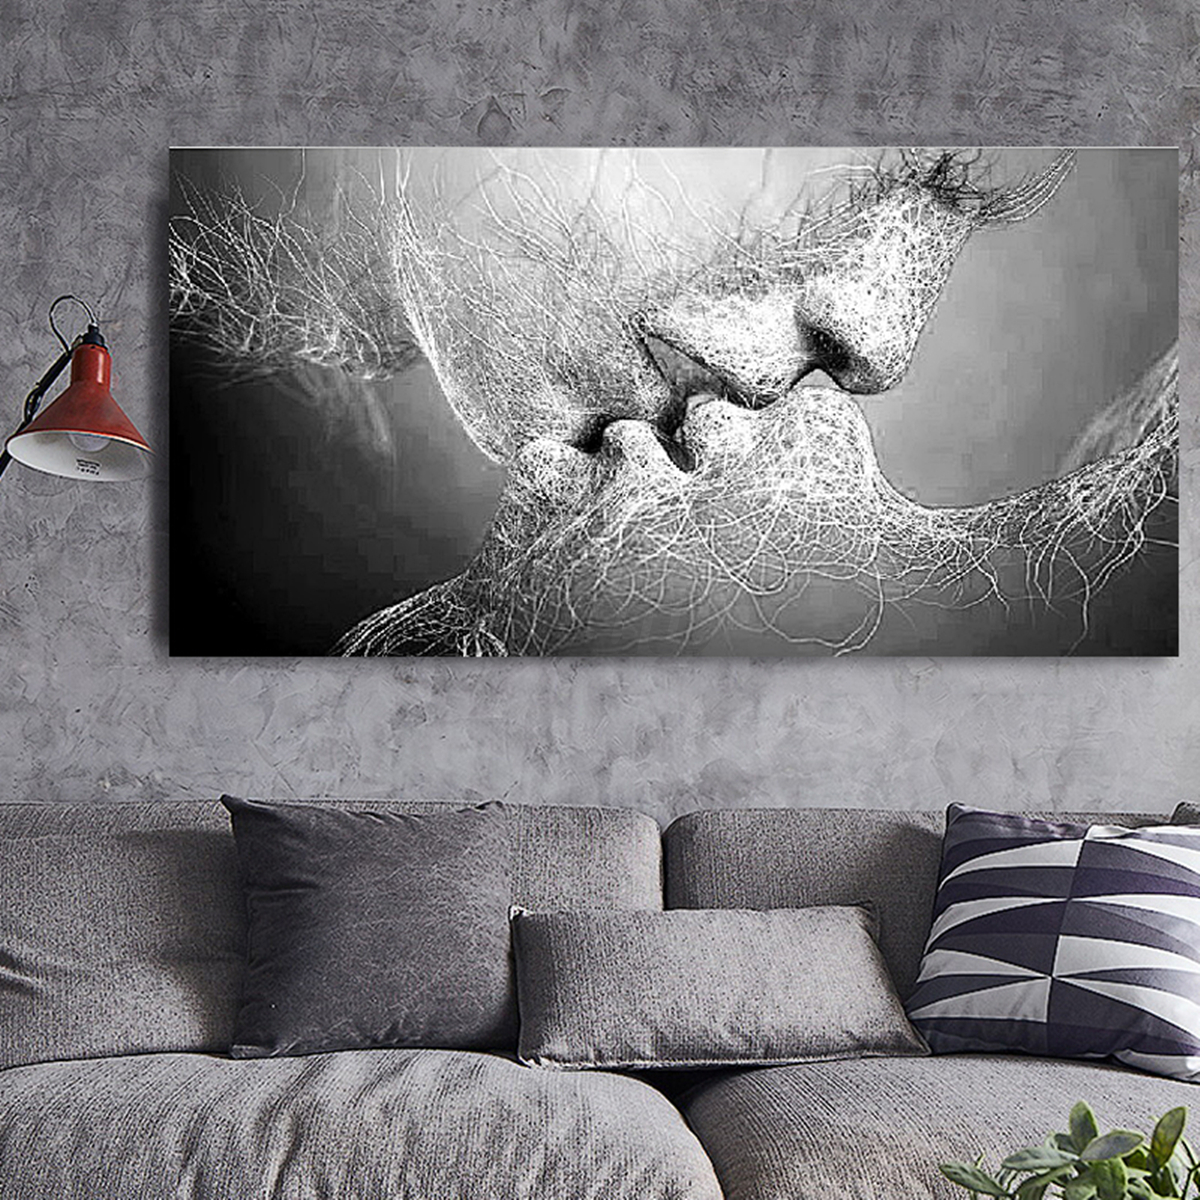 Black Amp White Love Kiss Abstract Art On Canvas Painting